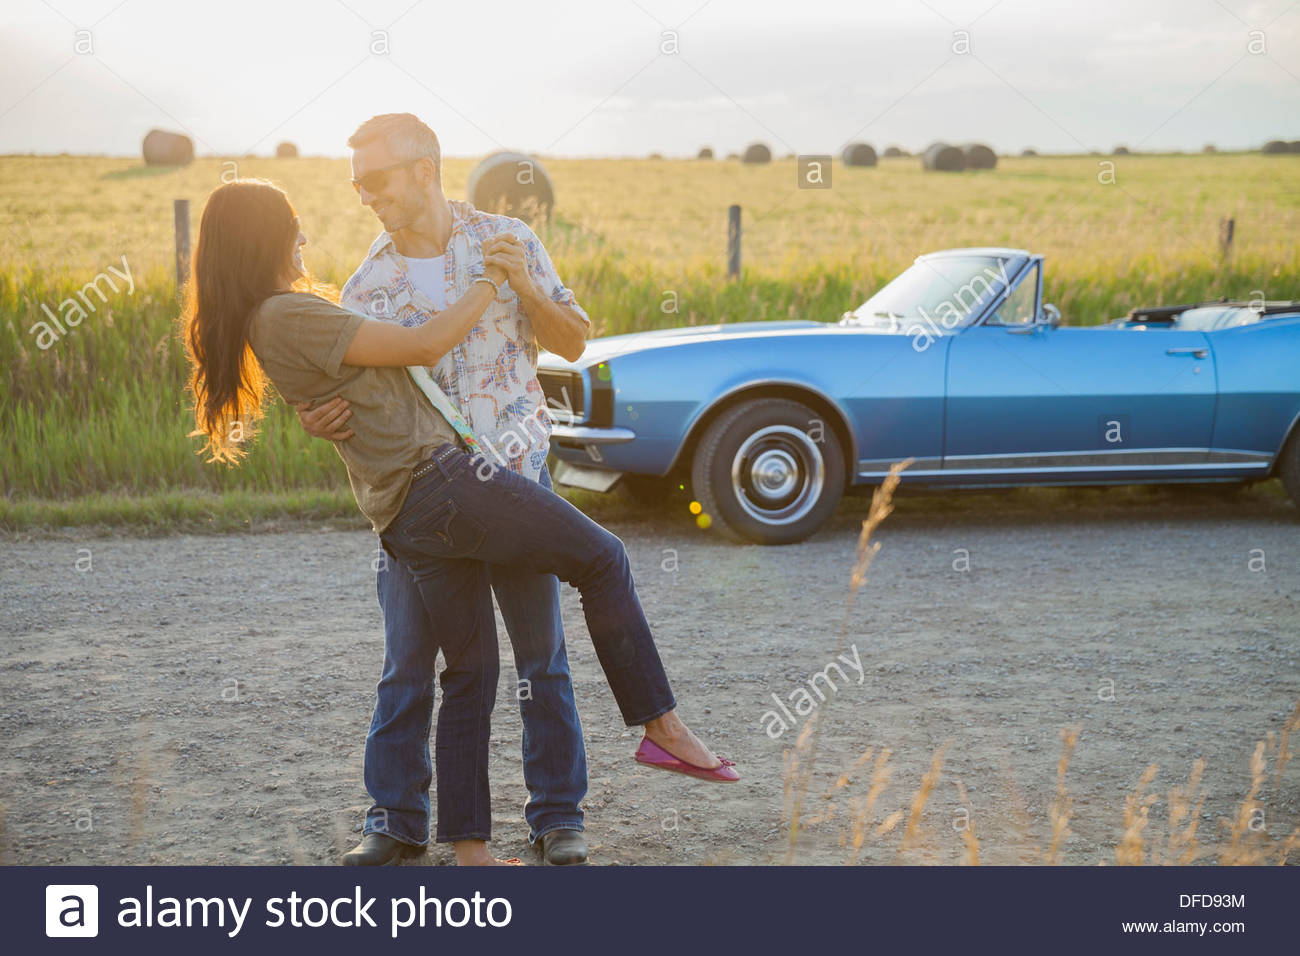 Romantic couple dancing on country road - Stock Image